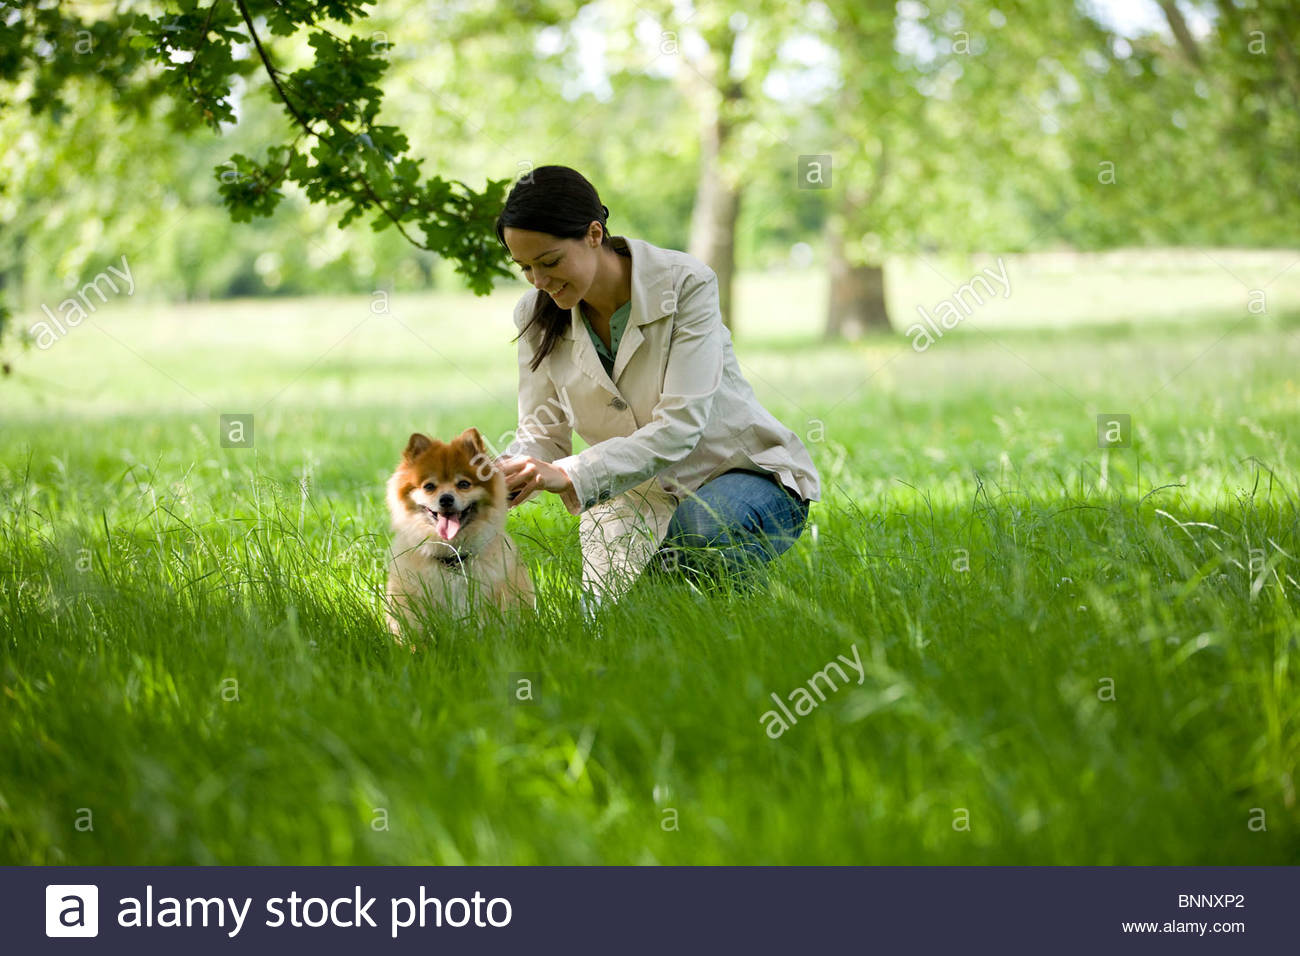 A young woman letting her dog off its lead - Stock Image